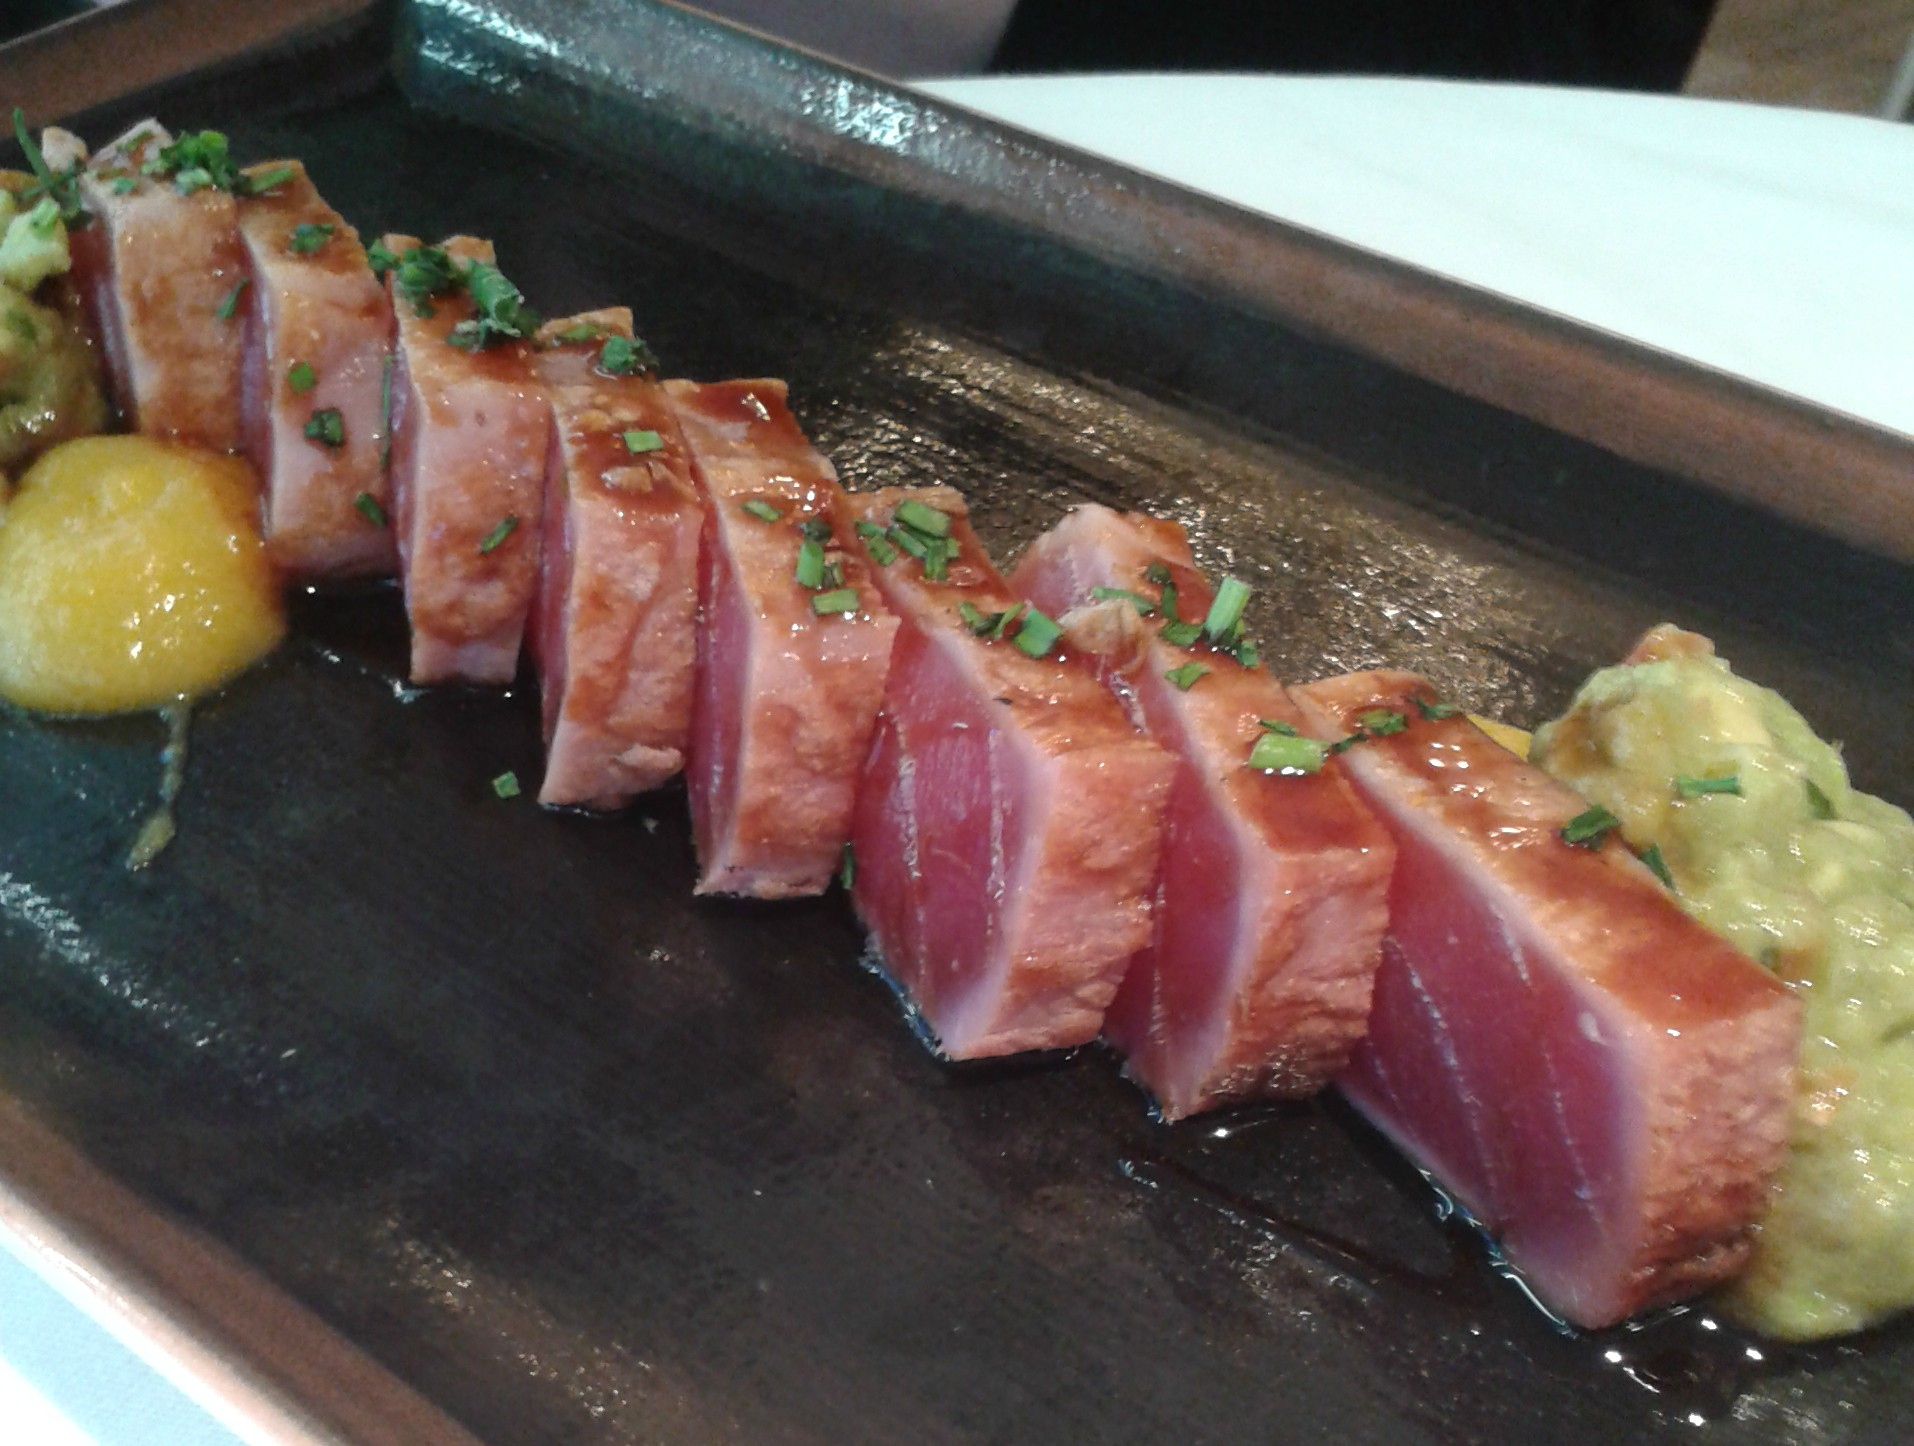 2014 Travel Review: Seared Tuna at La Mary, Barcelona | Todd's Travels Travel Blog